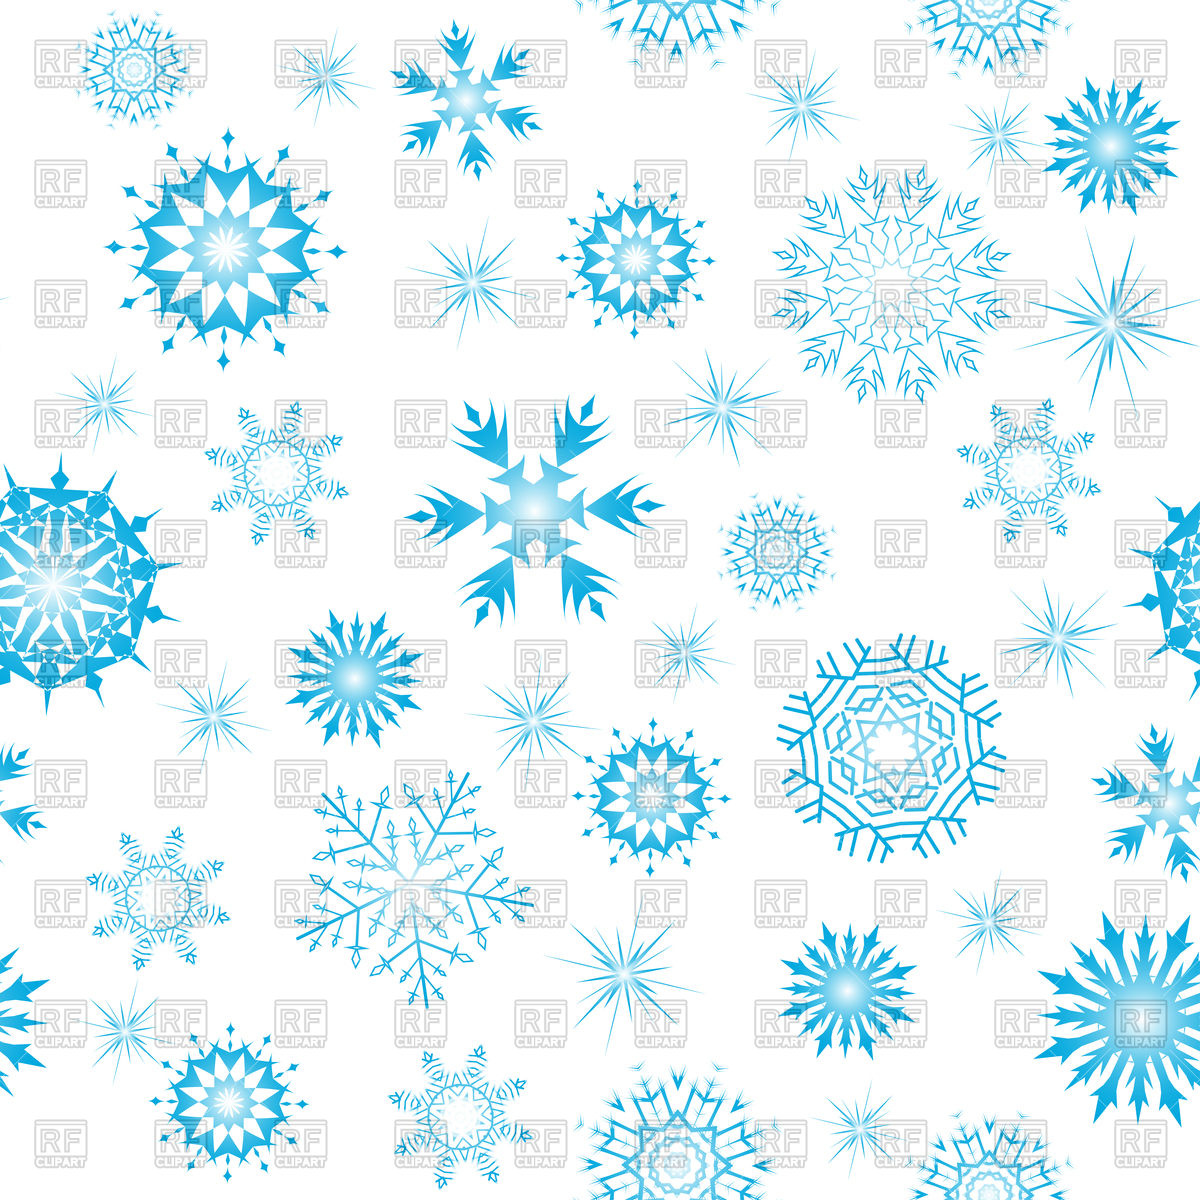 Seamless snowflake winter background Vector Image #92648.